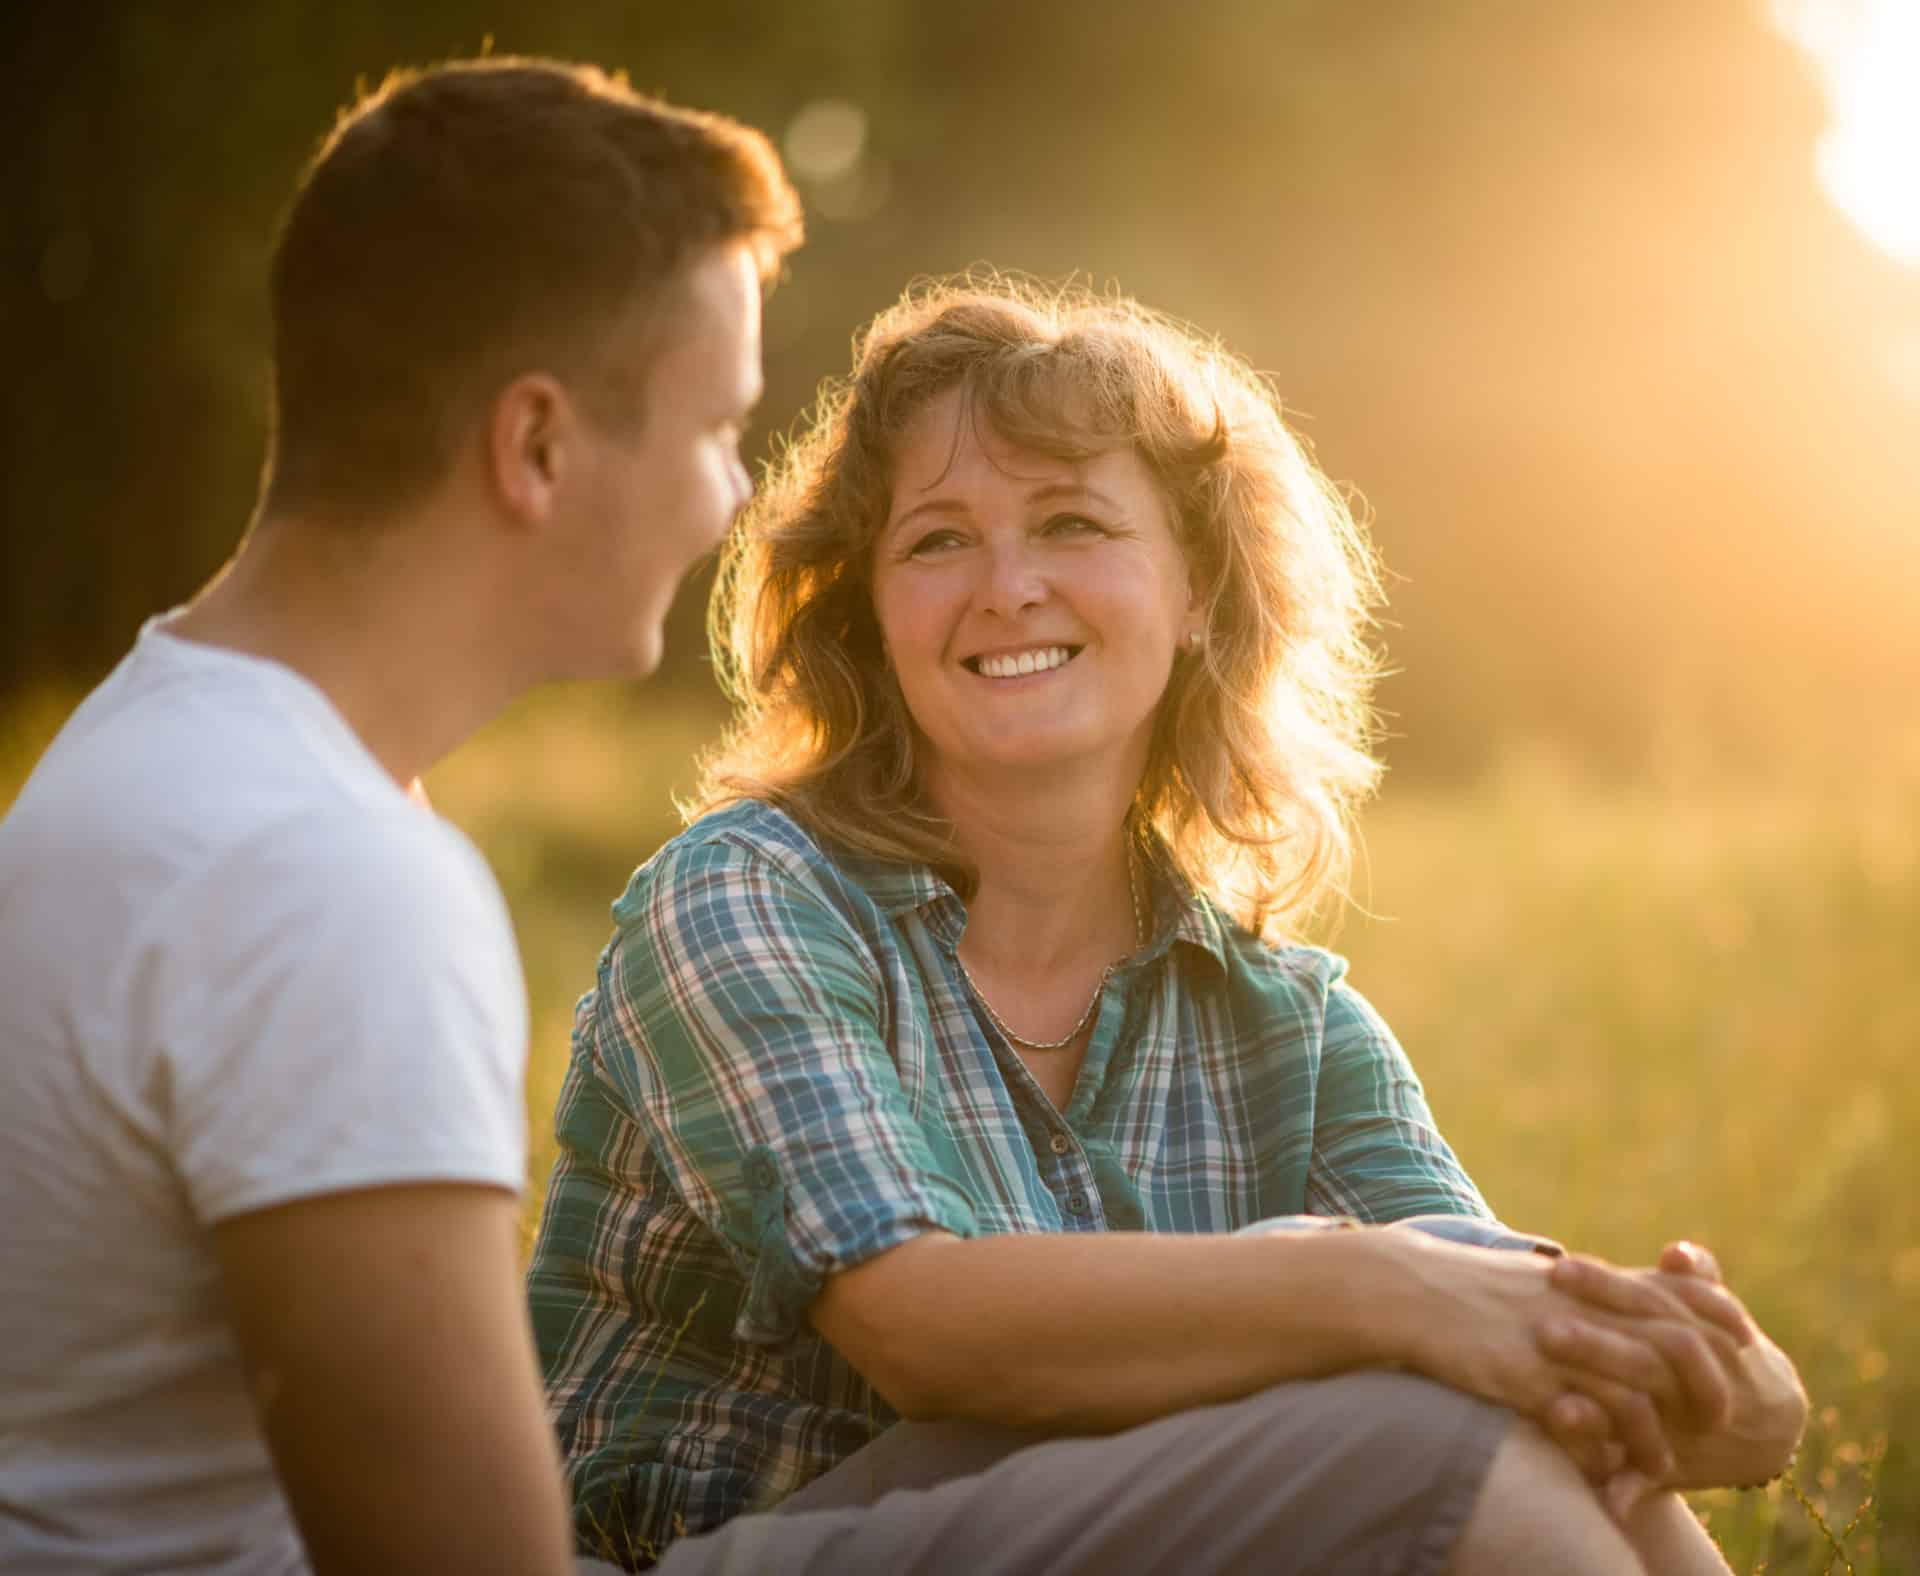 Mom and Son Shutterstock